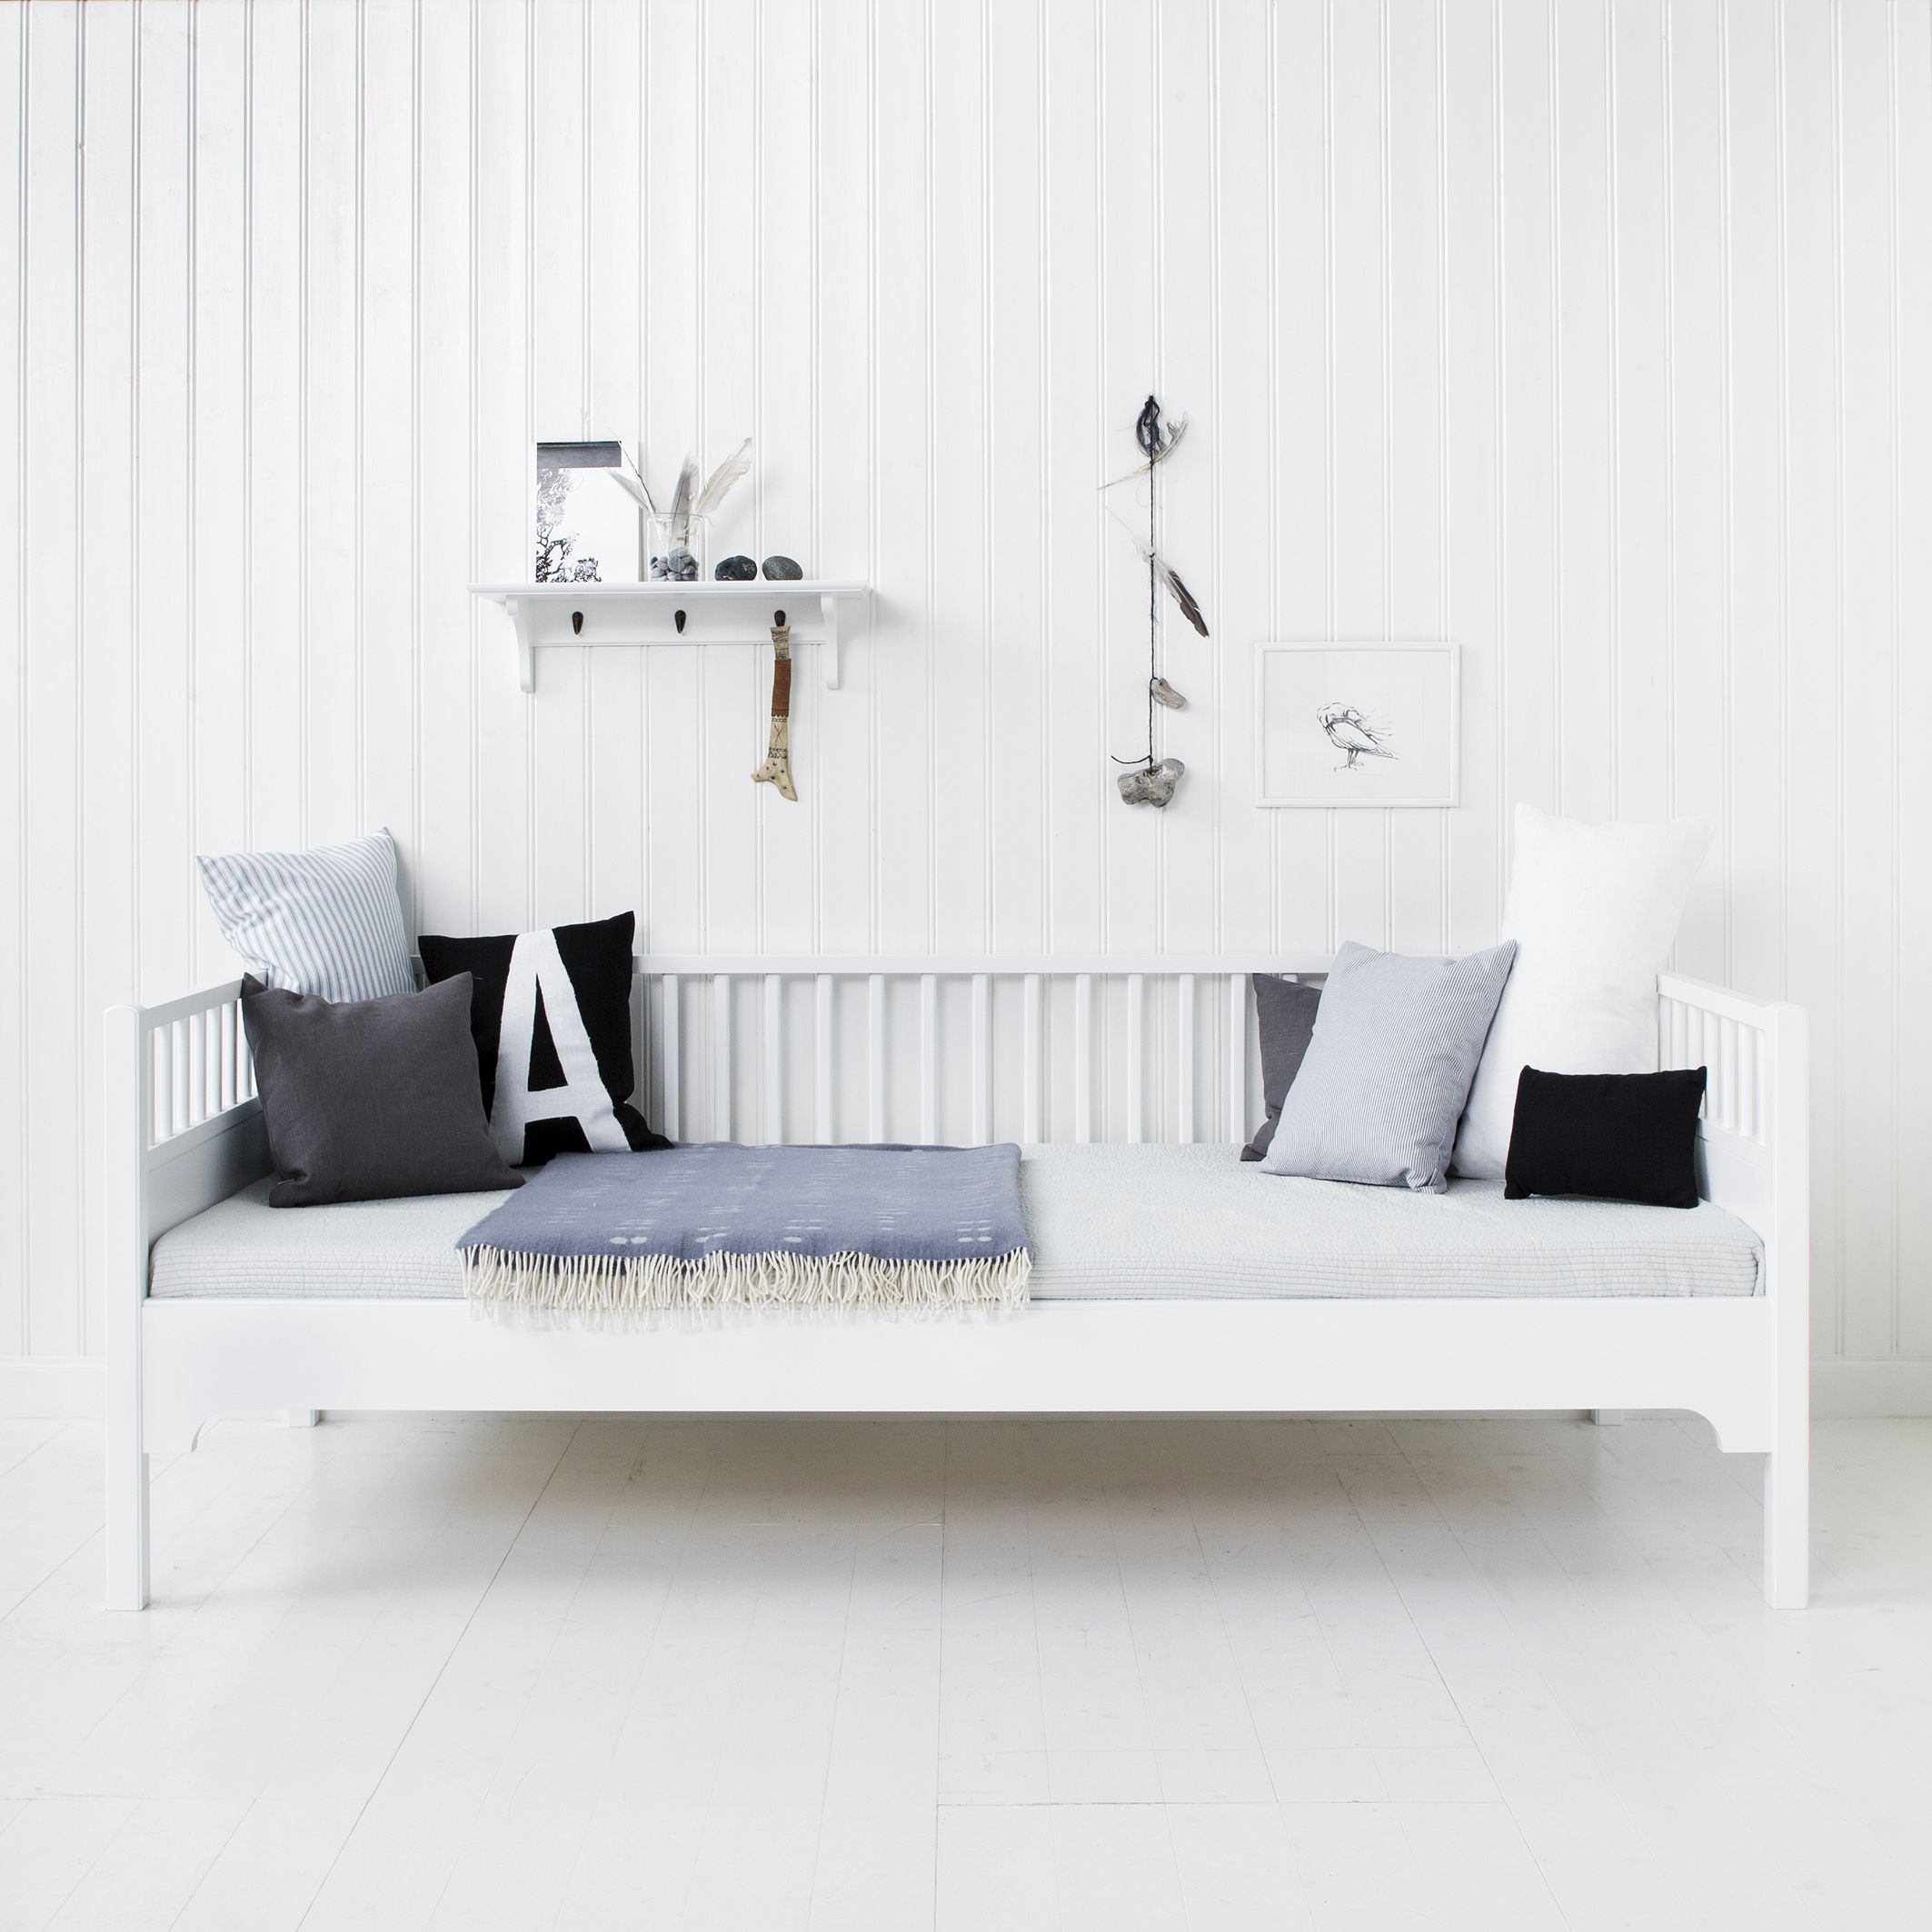 furniture websites design oliver furniture. Furniture Websites Design Oliver Furniture. Day Bed From In Nordic And Style R